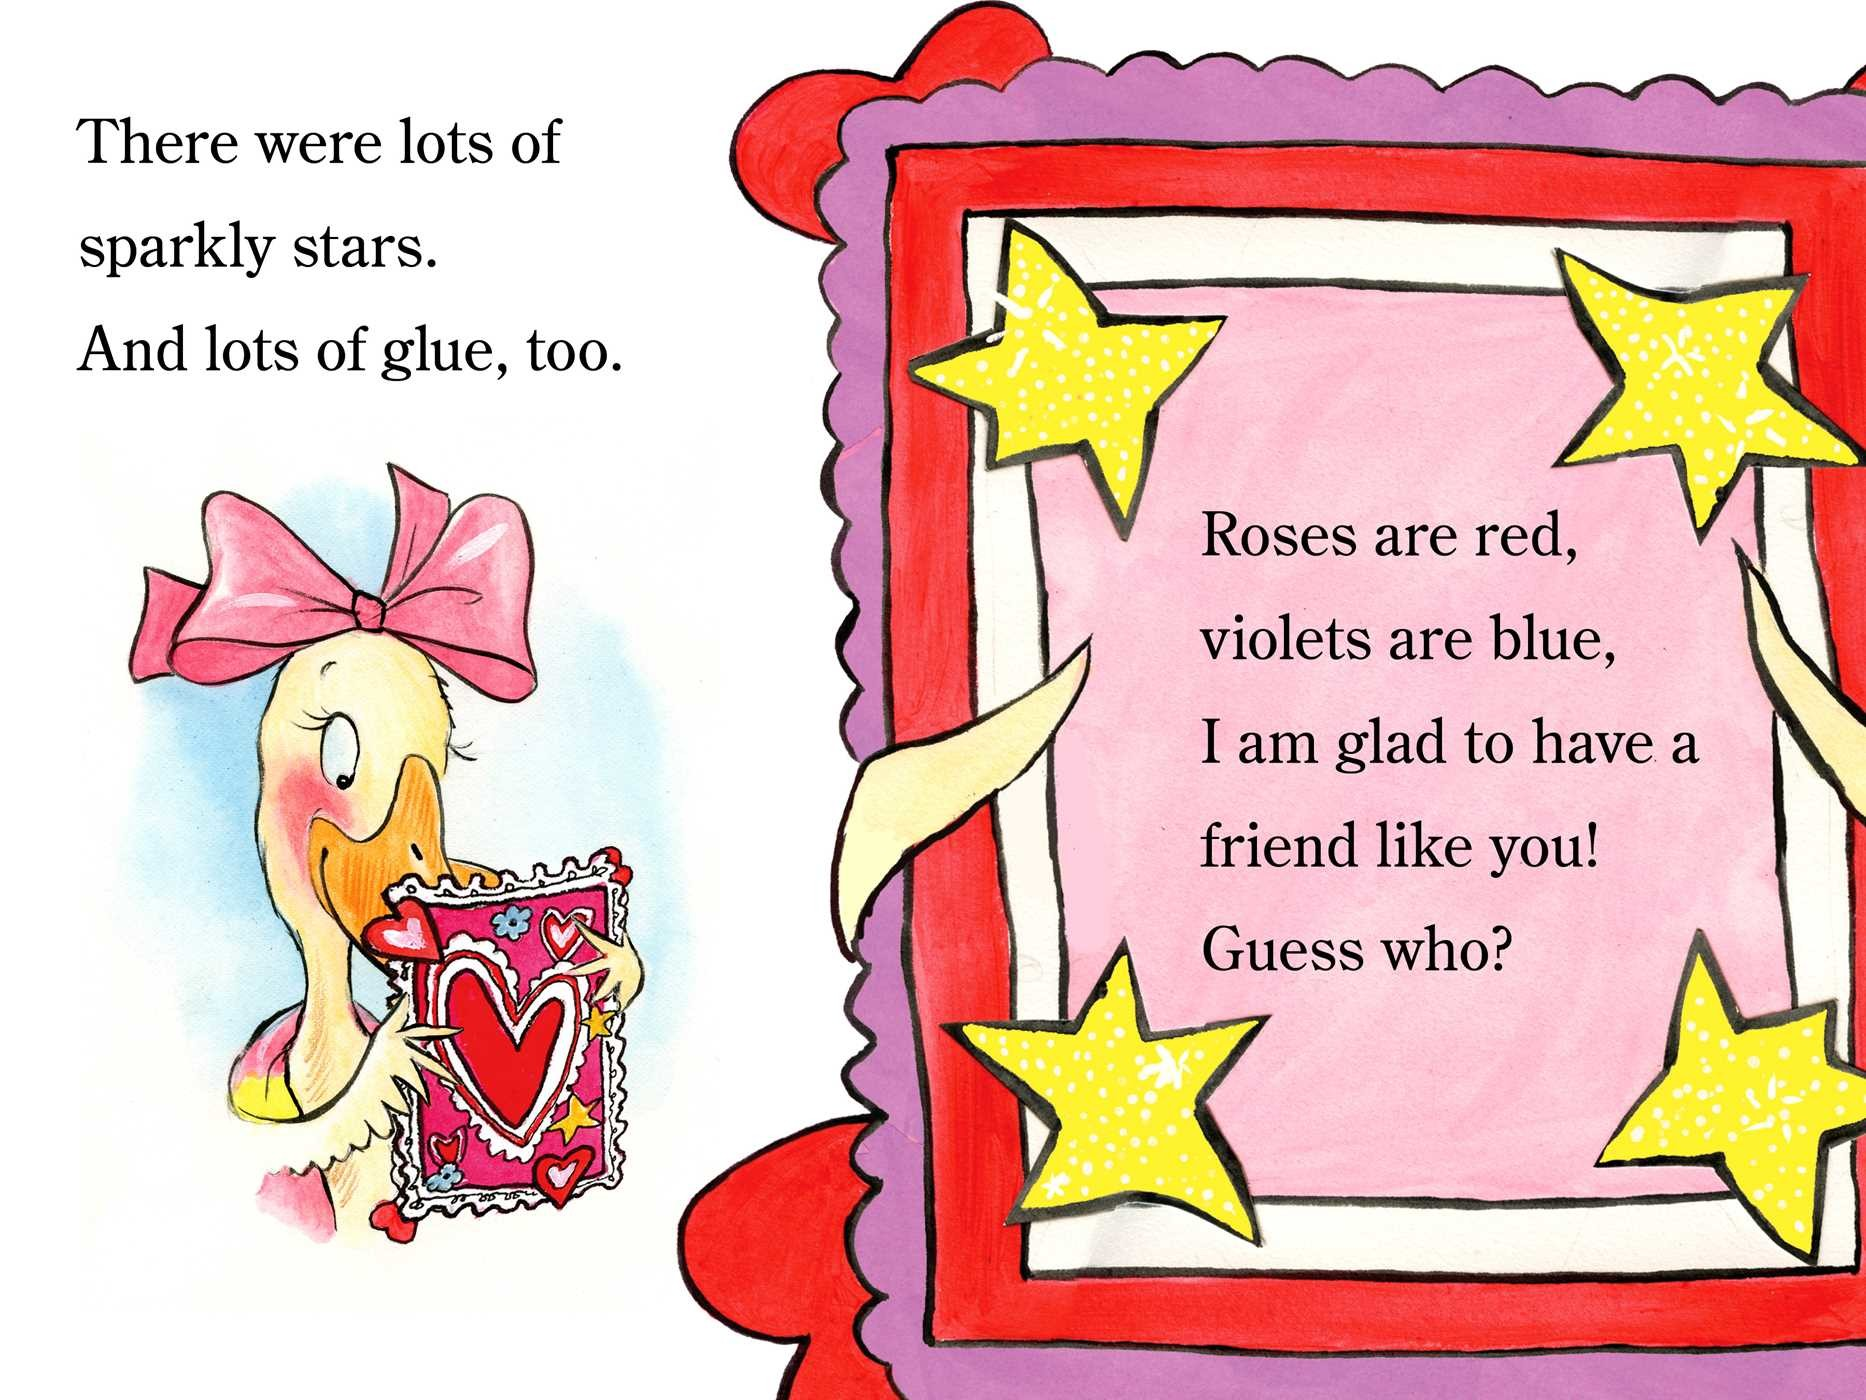 Katy duck and the secret valentine 9781442498105.in02